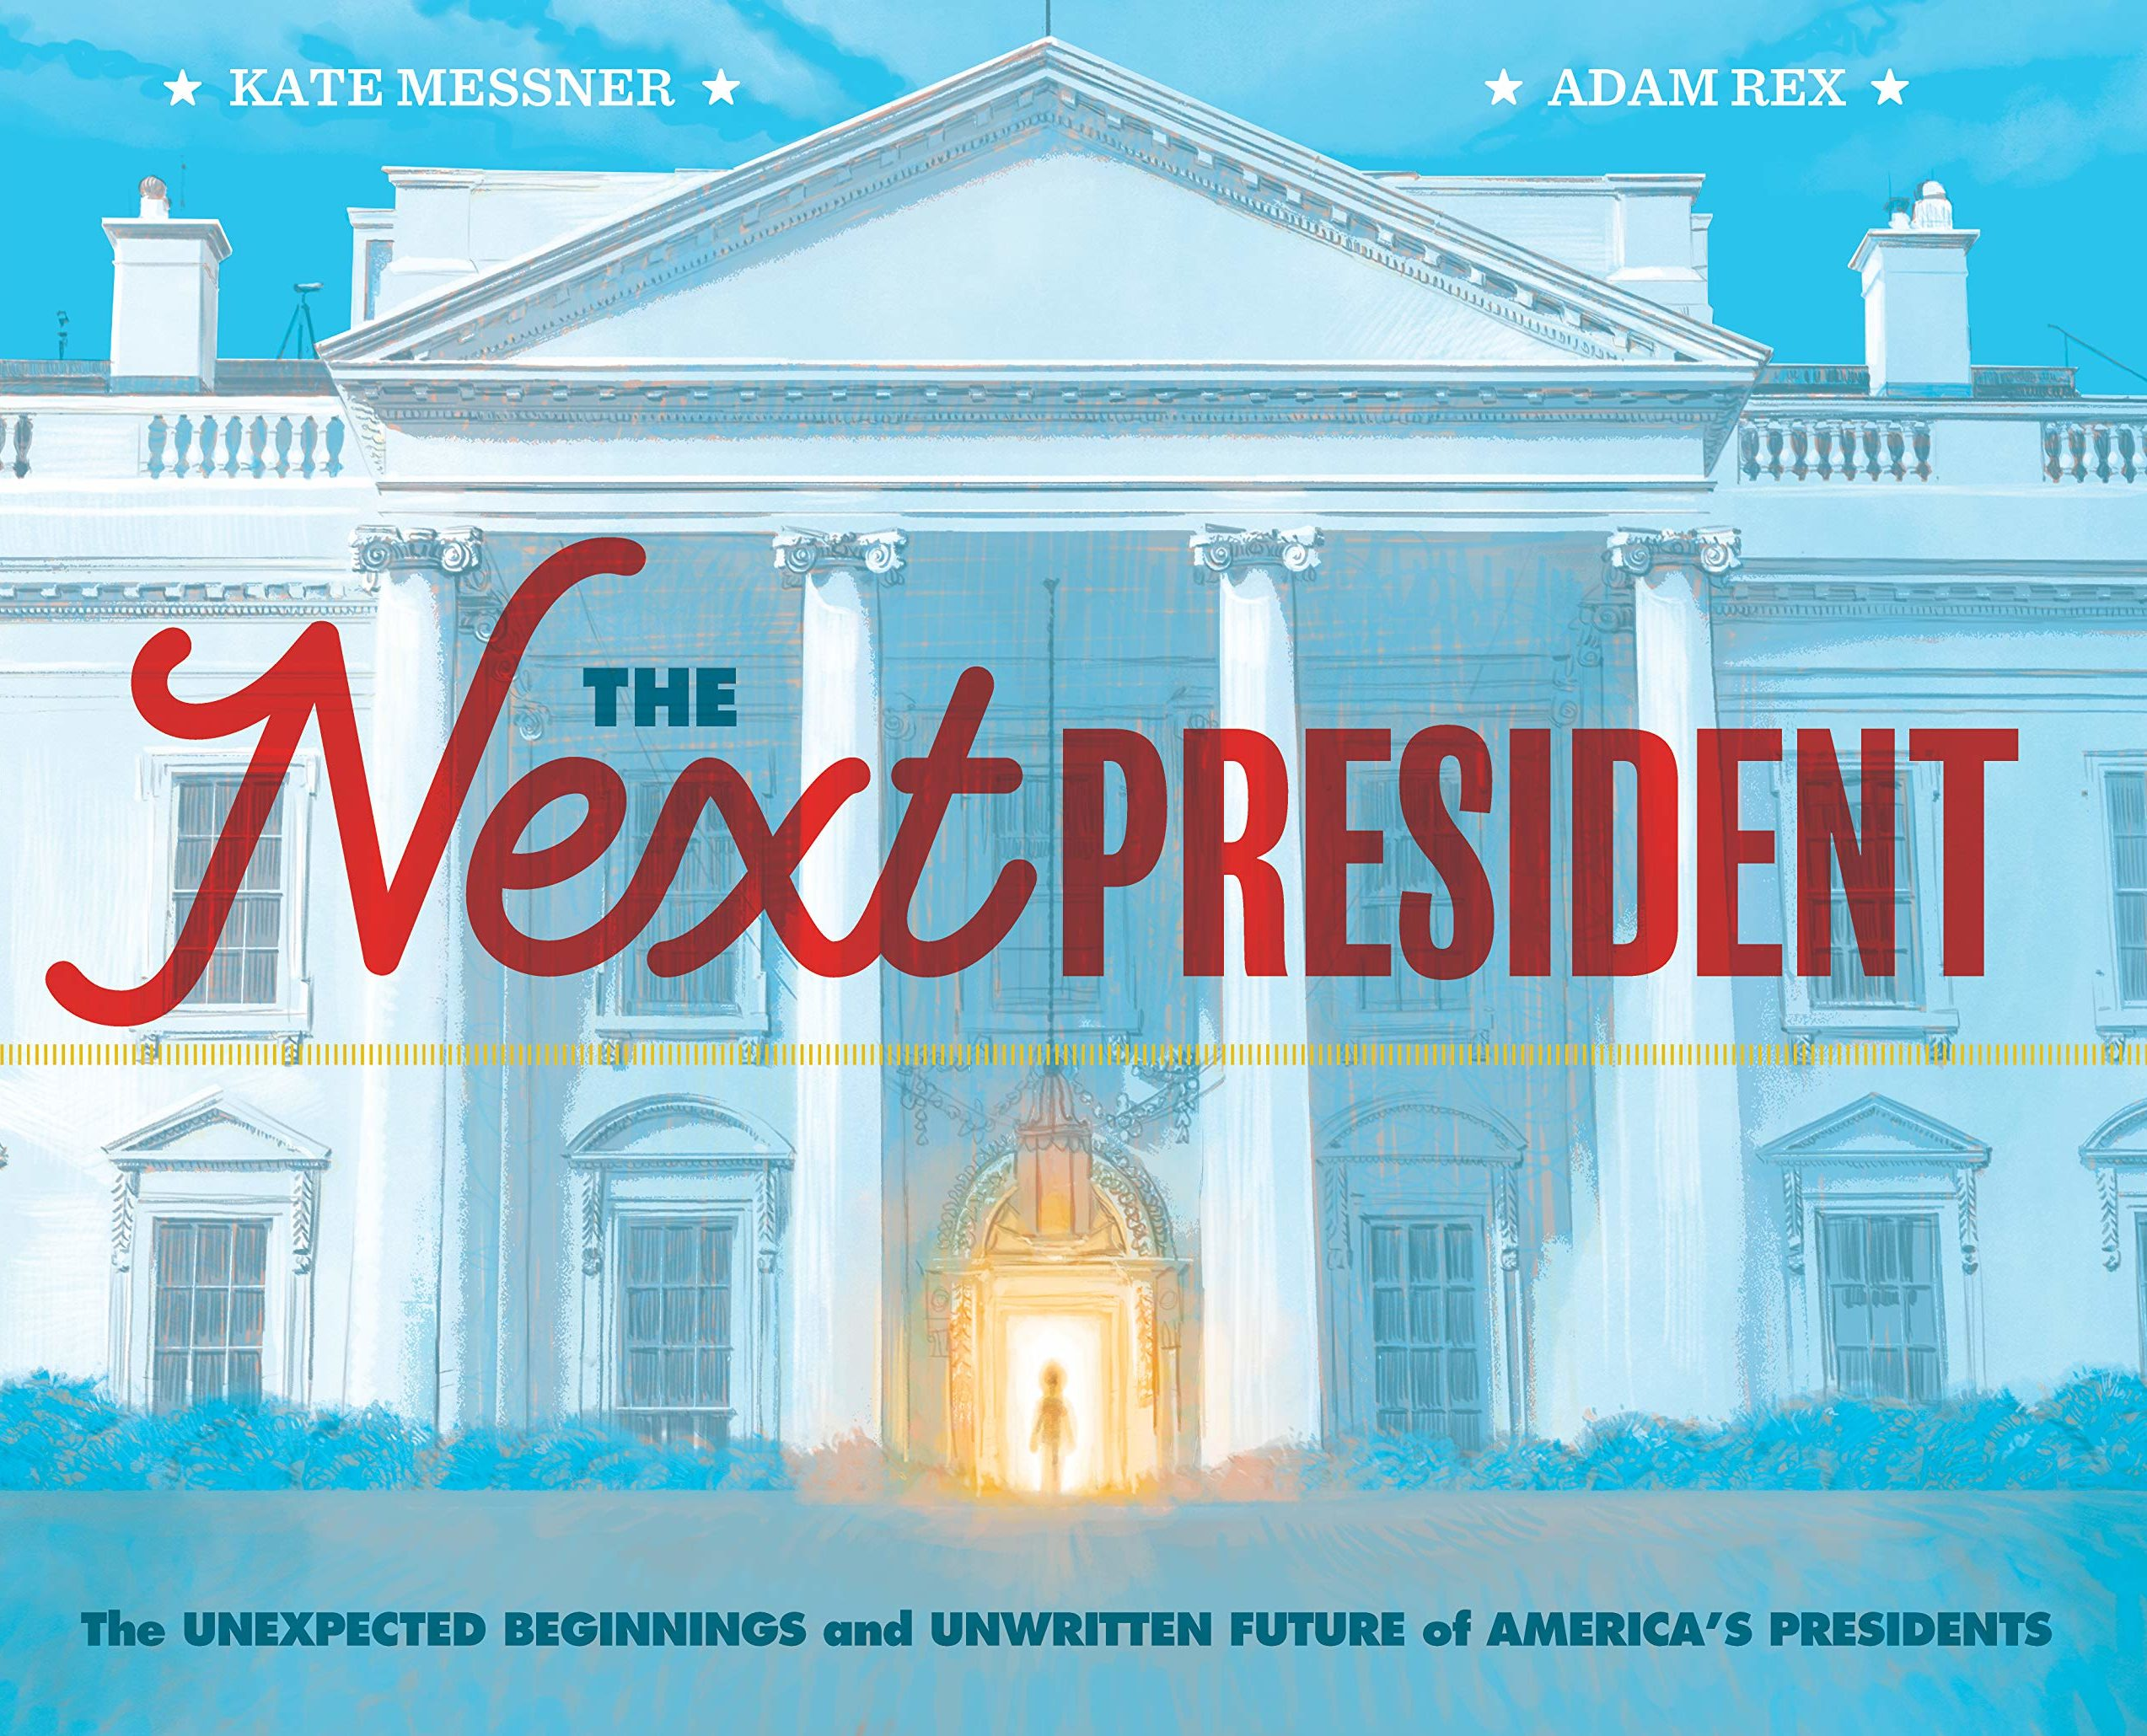 A picture book cover featuring the White House on a light blue background, with a backlit figure emerging from a door flooded with golden light.